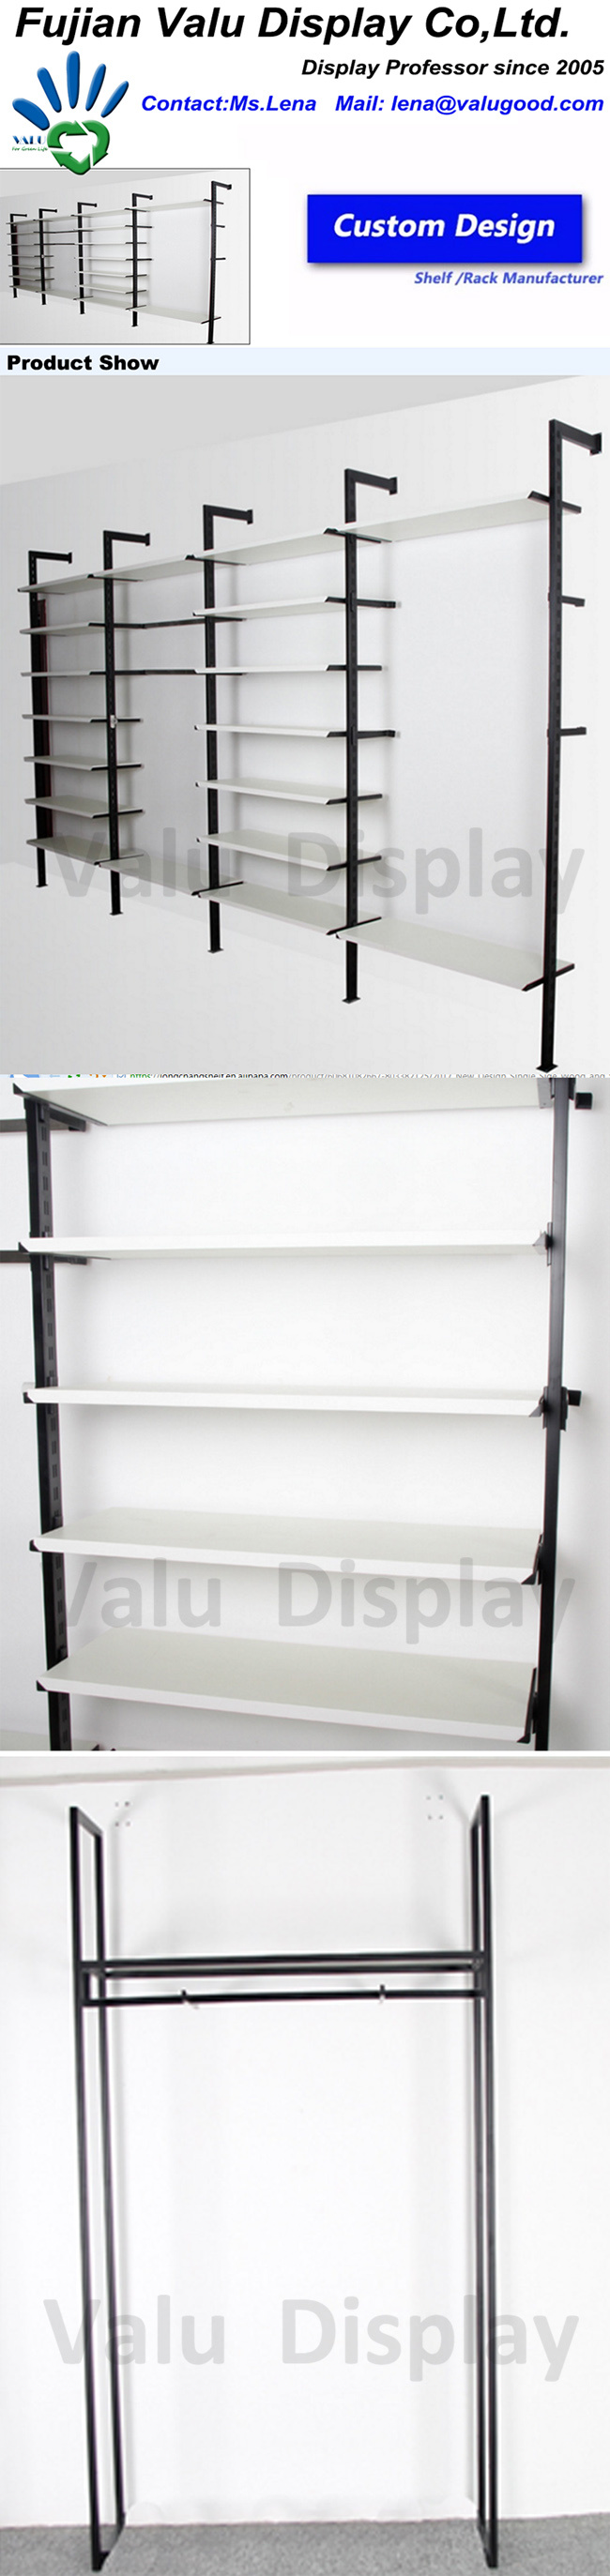 Stainless Steel Metal Clothes Shoes Garment Nesting Display Stand for Shop Fitting